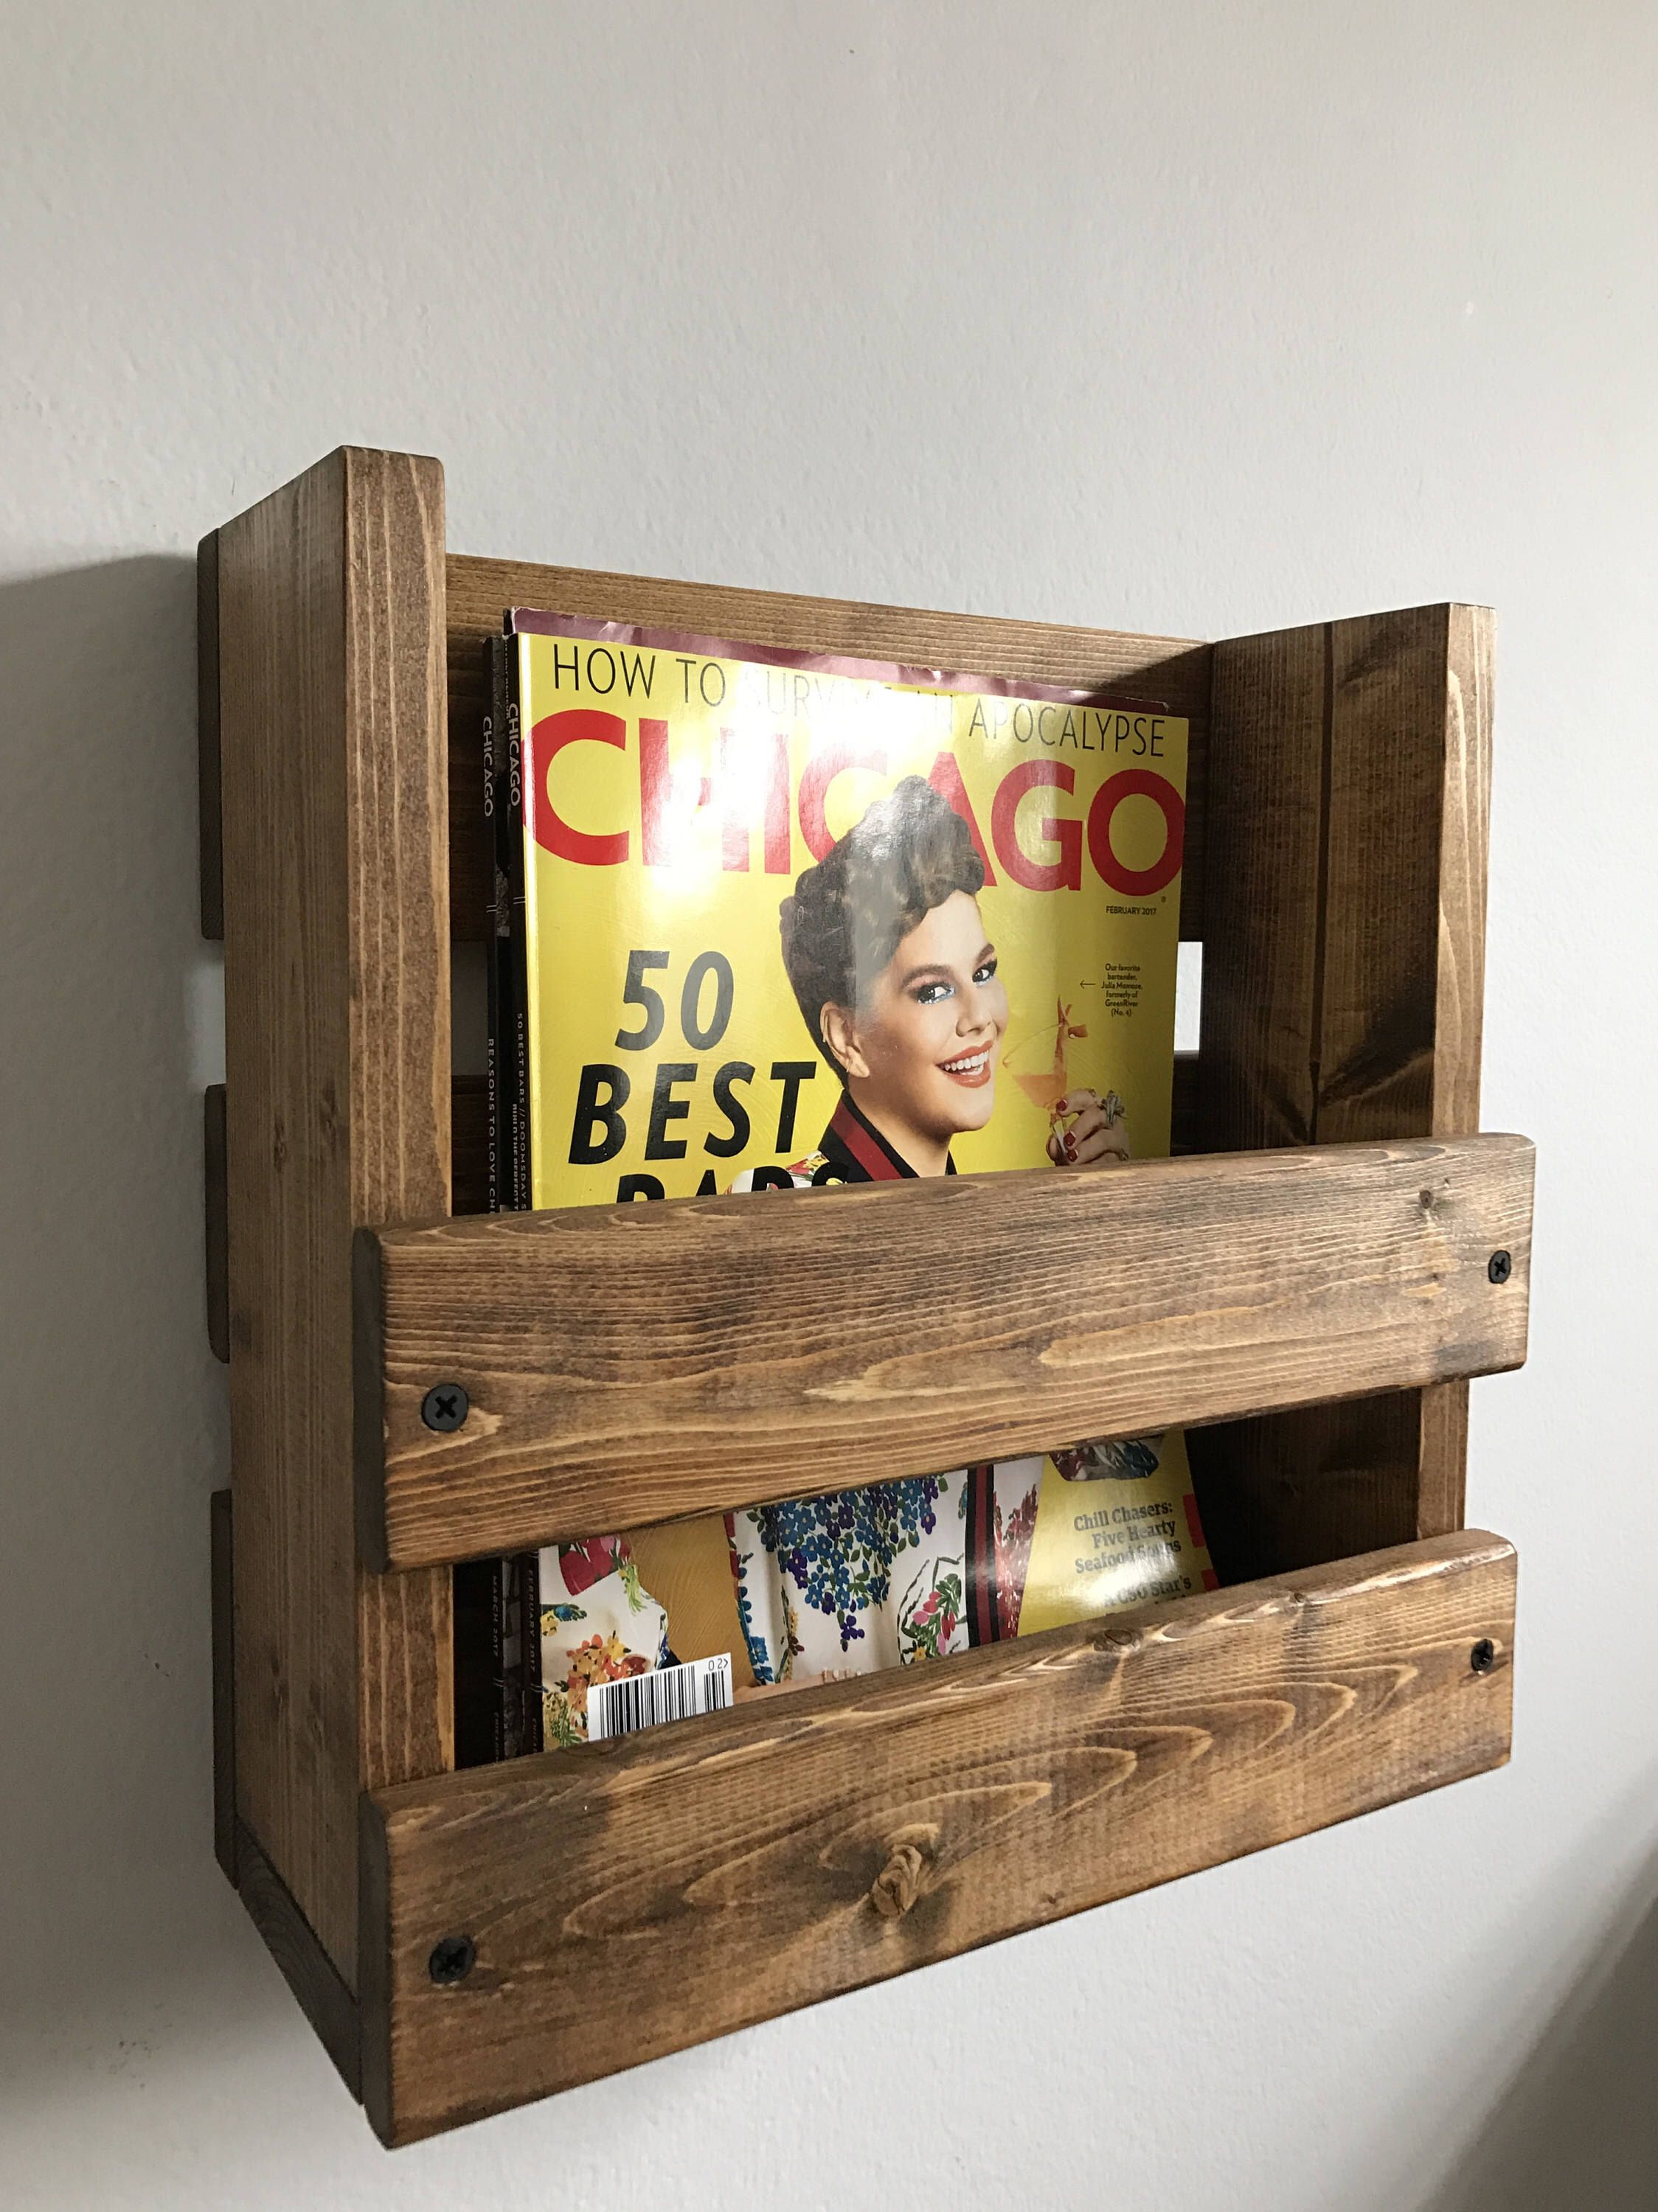 version wall magazine mount collar for books ideal magazines dividers winsome holder living room adjustable rack mounted materials oak in with comes and construction five displaying karl horizontal display soner mdf andersson enchanting